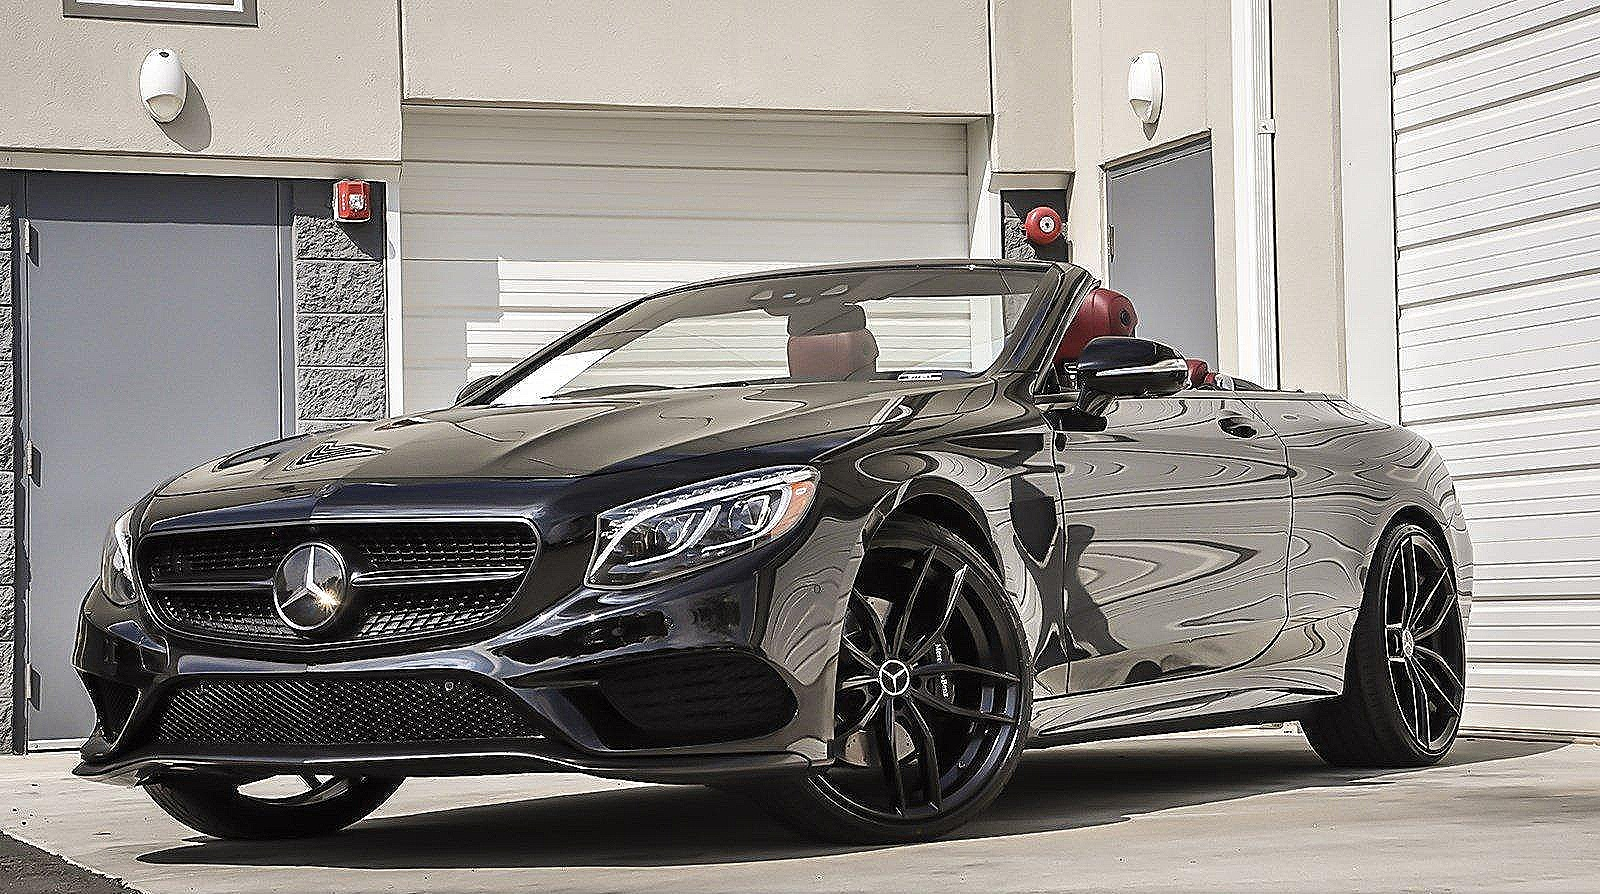 Mercedes-Benz S550 Convertible - Color | Black